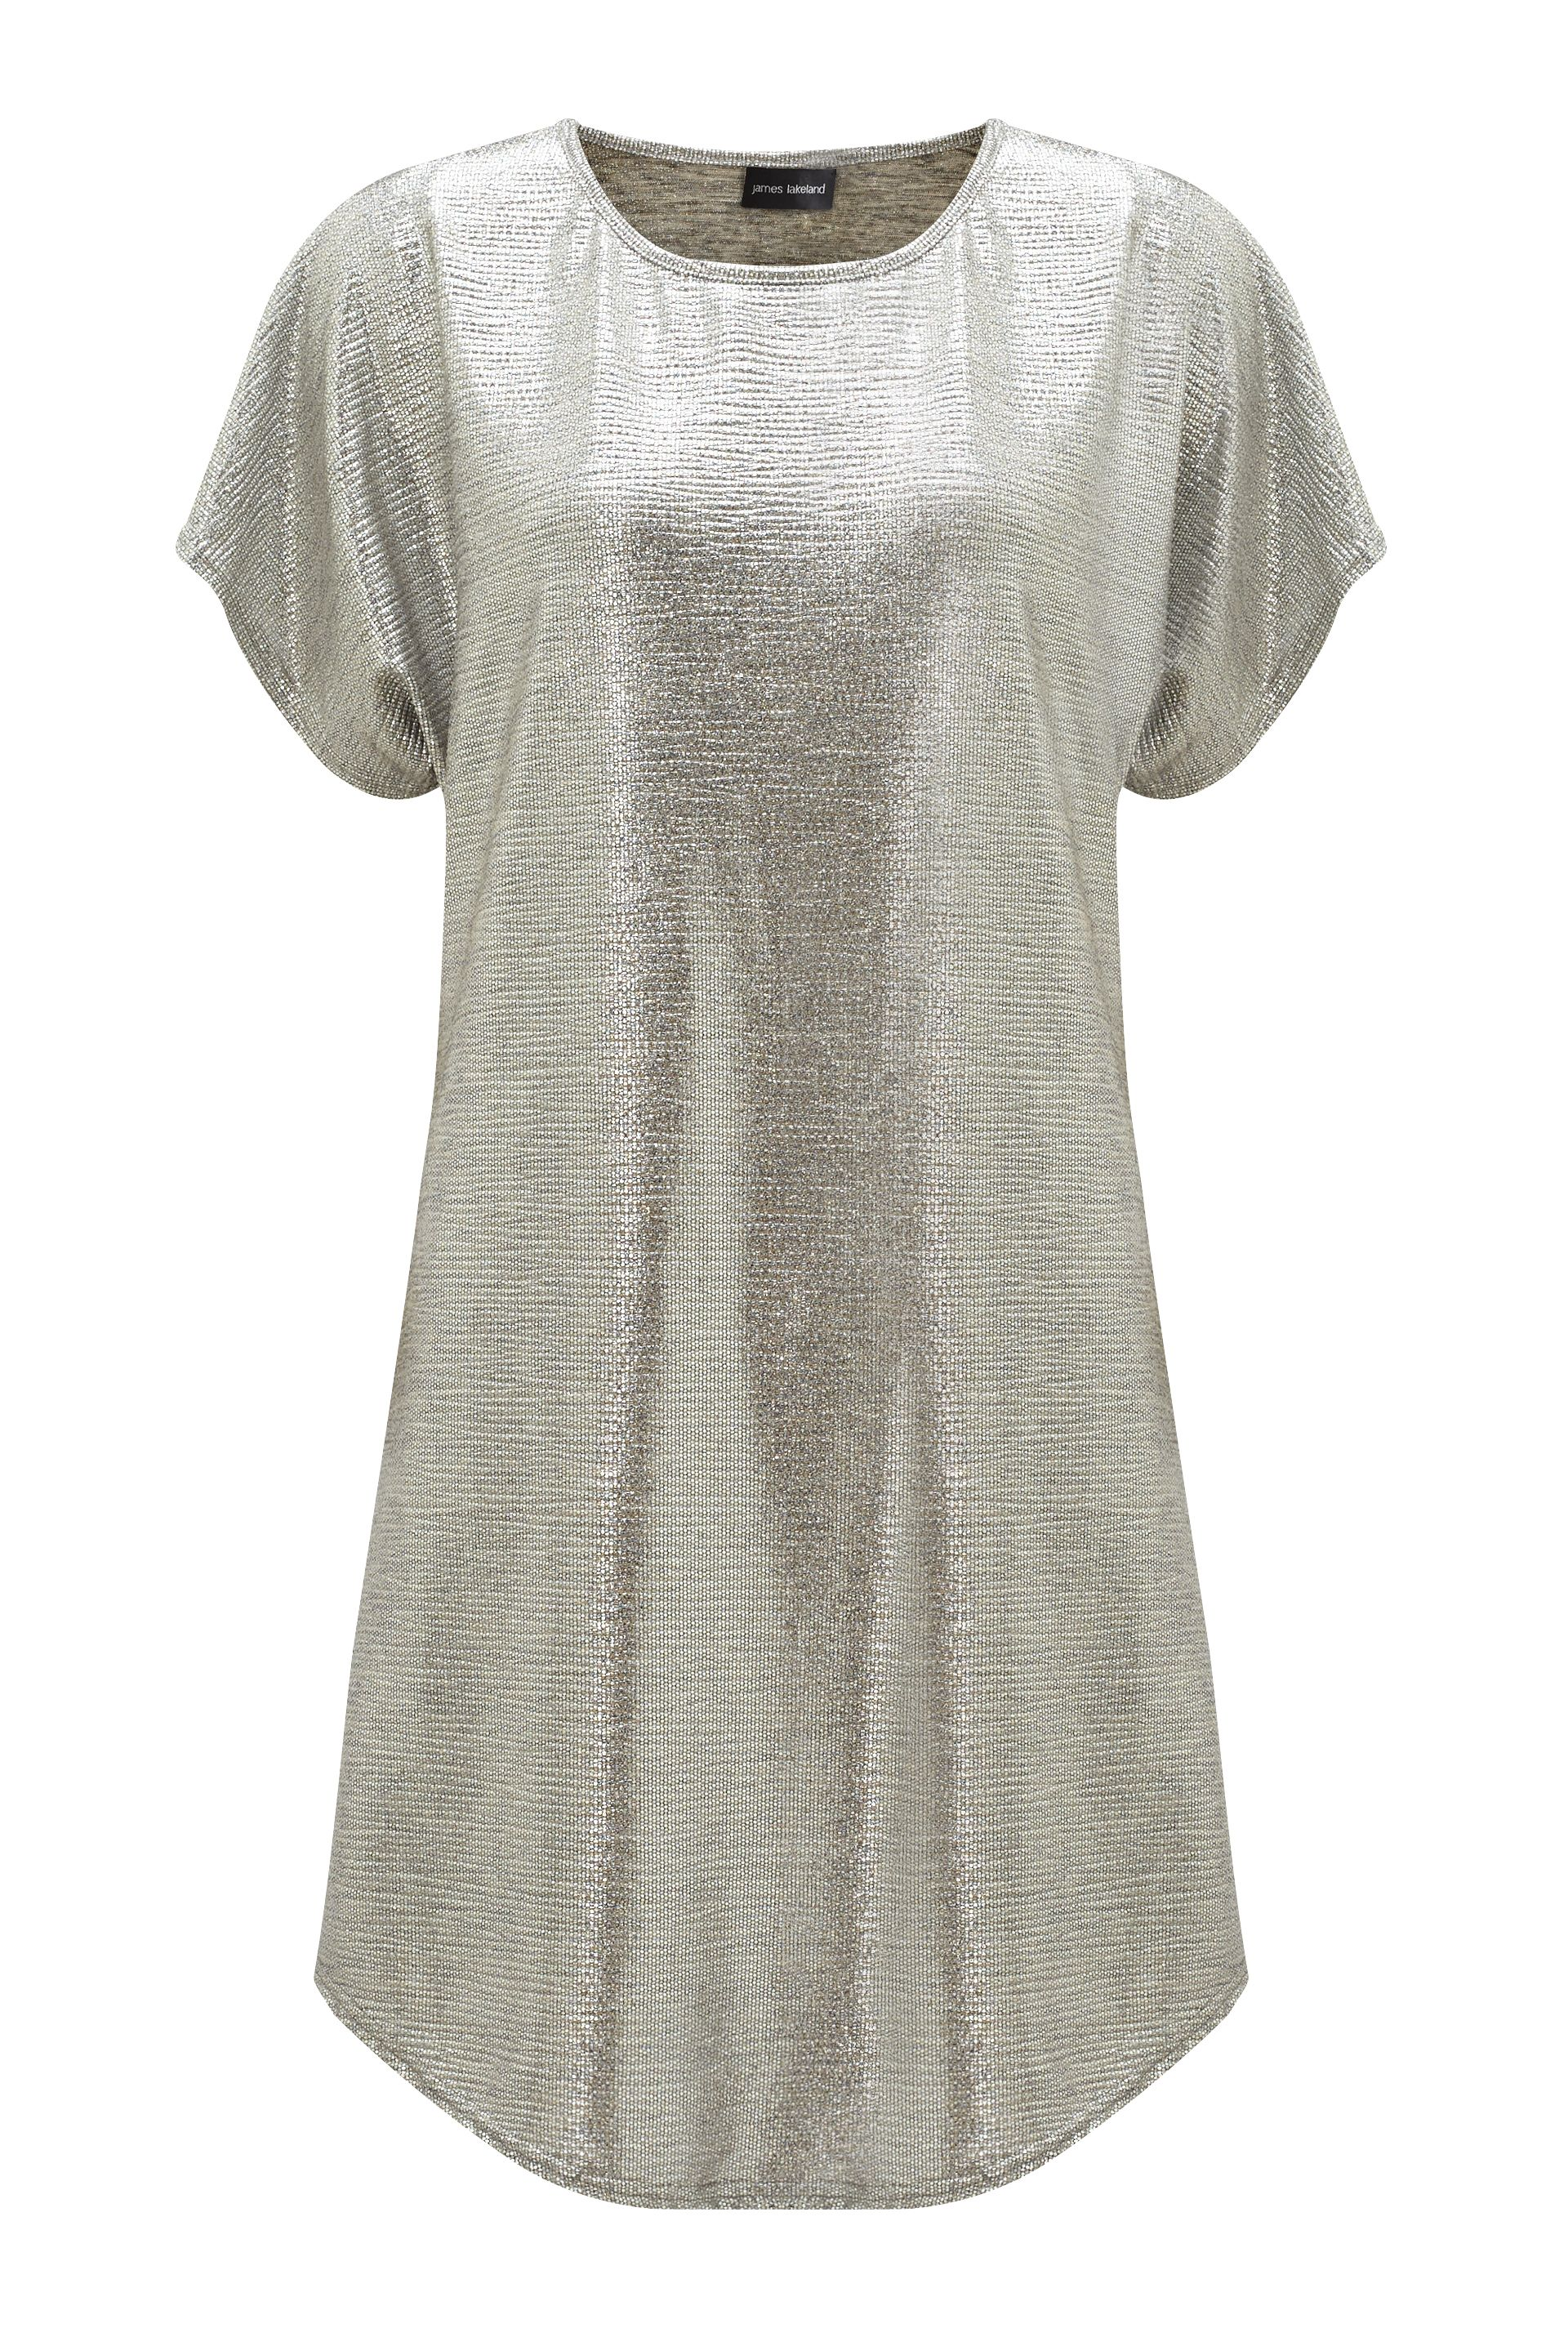 James Lakeland Metallic Tunic Dress, Silver Silverlic